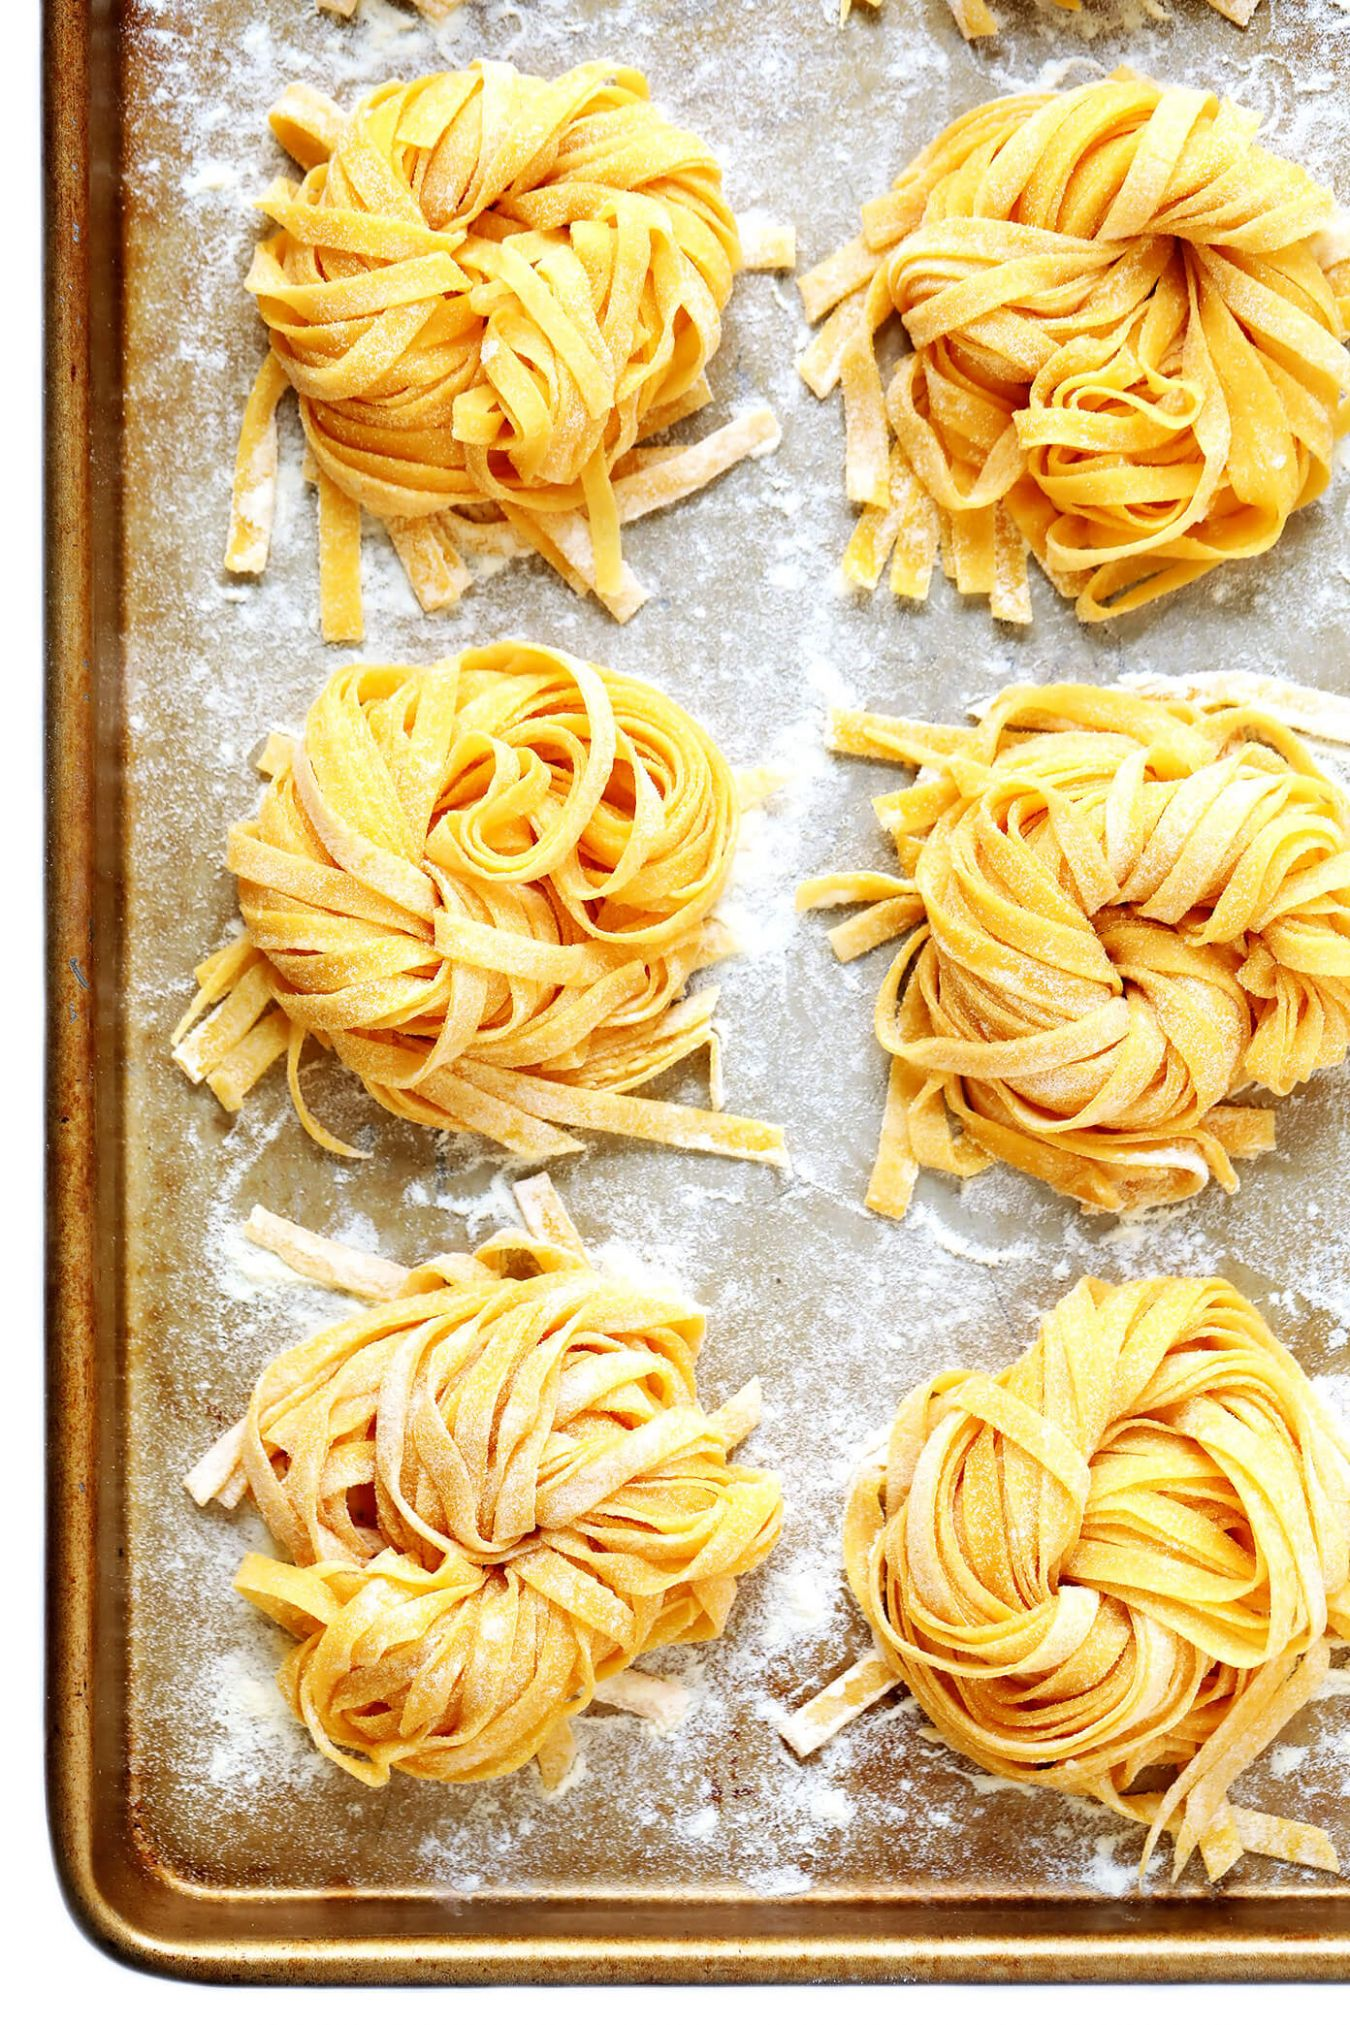 Homemade Pasta | Gimme Some Oven - Pasta Recipes Kitchenaid Stand Mixer